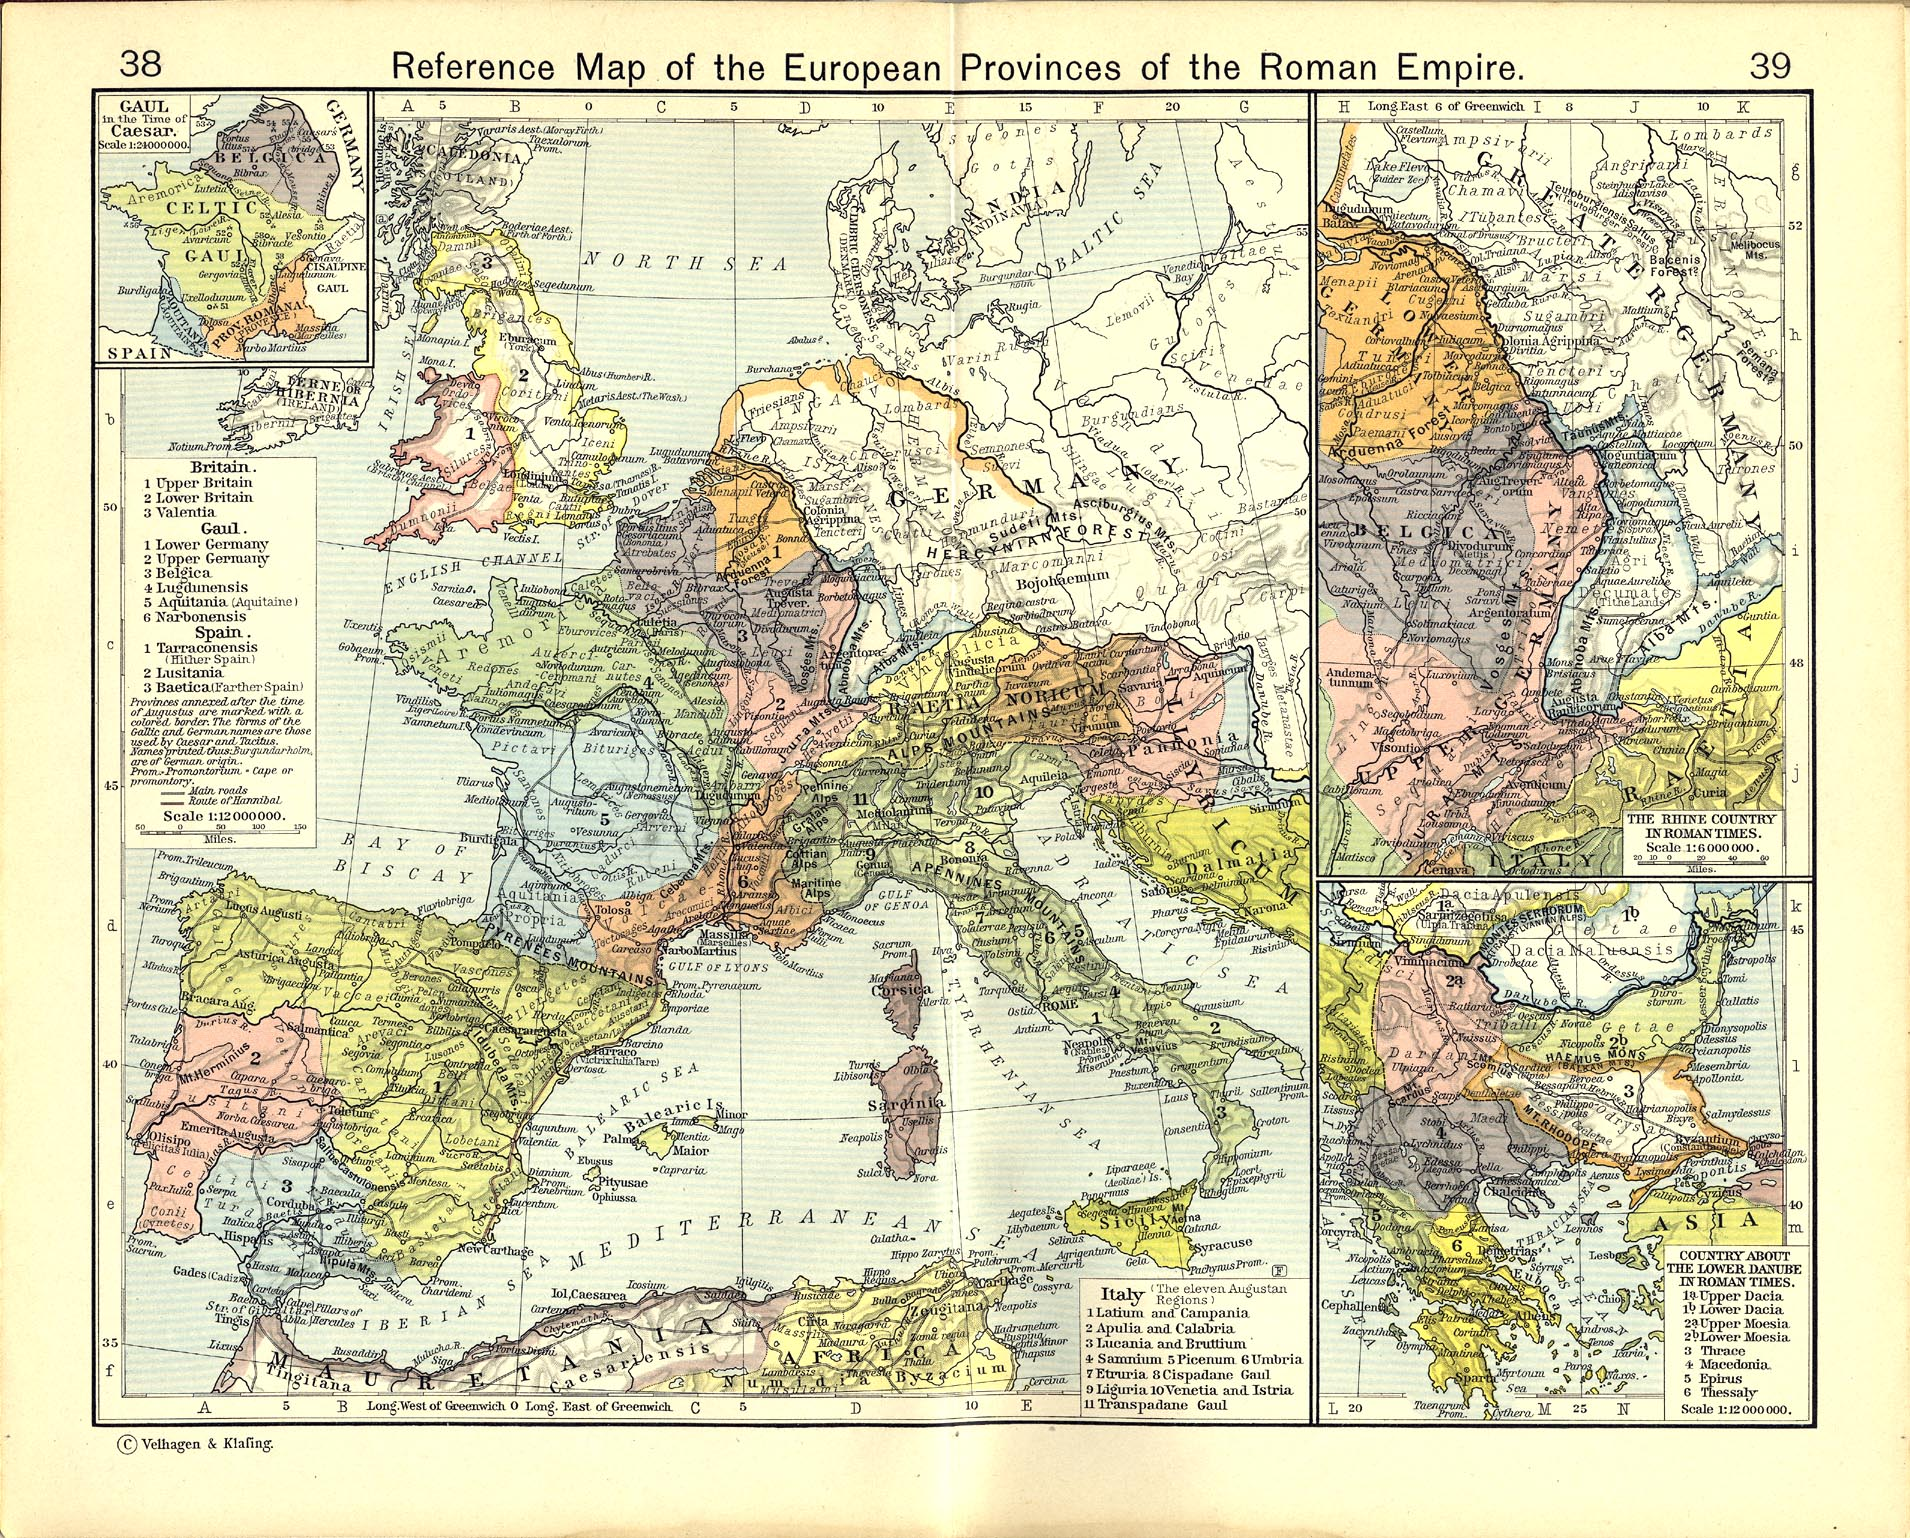 Europe Historical Maps - Perry-Castañeda Map Collection - UT ... on kenya in spanish, croatia in spanish, botswana in spanish, east in spanish, belgium in spanish, madagascar in spanish, kiribati in spanish, albania in spanish, maldives in spanish, norway in spanish, paraguay in spanish, new zealand in spanish, swaziland in spanish, anguilla in spanish, nepal in spanish, moscow in spanish, barbados in spanish, cambodia in spanish, caribbean in spanish, singapore in spanish,